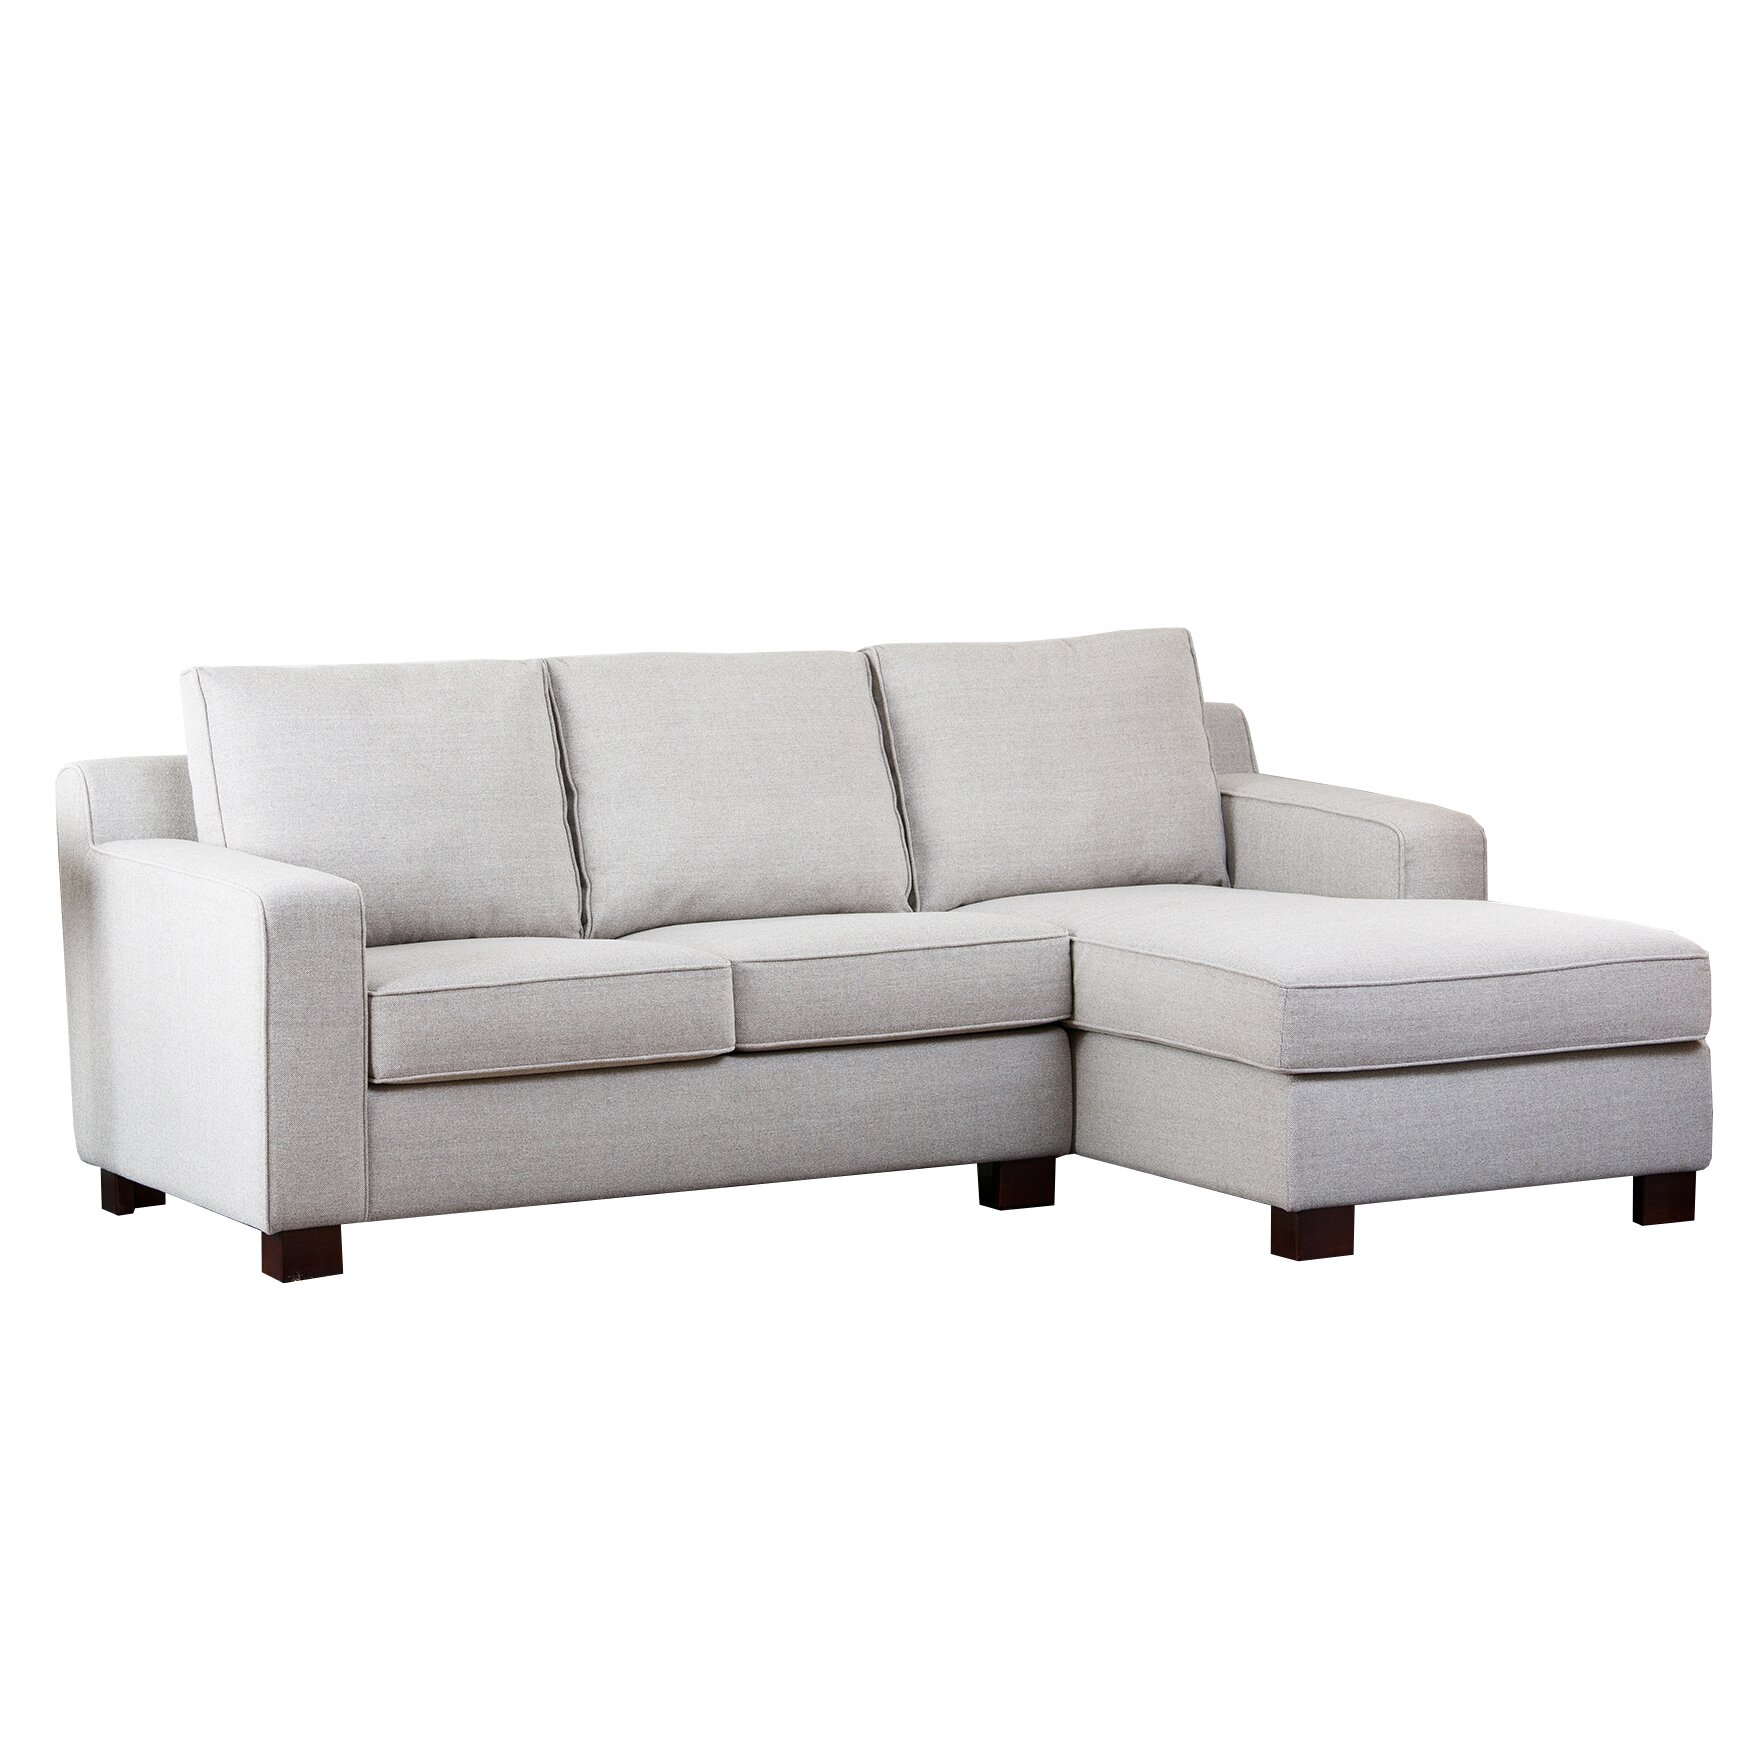 Regina Right Hand Facing Sectional LTRN1096 LTRN1096